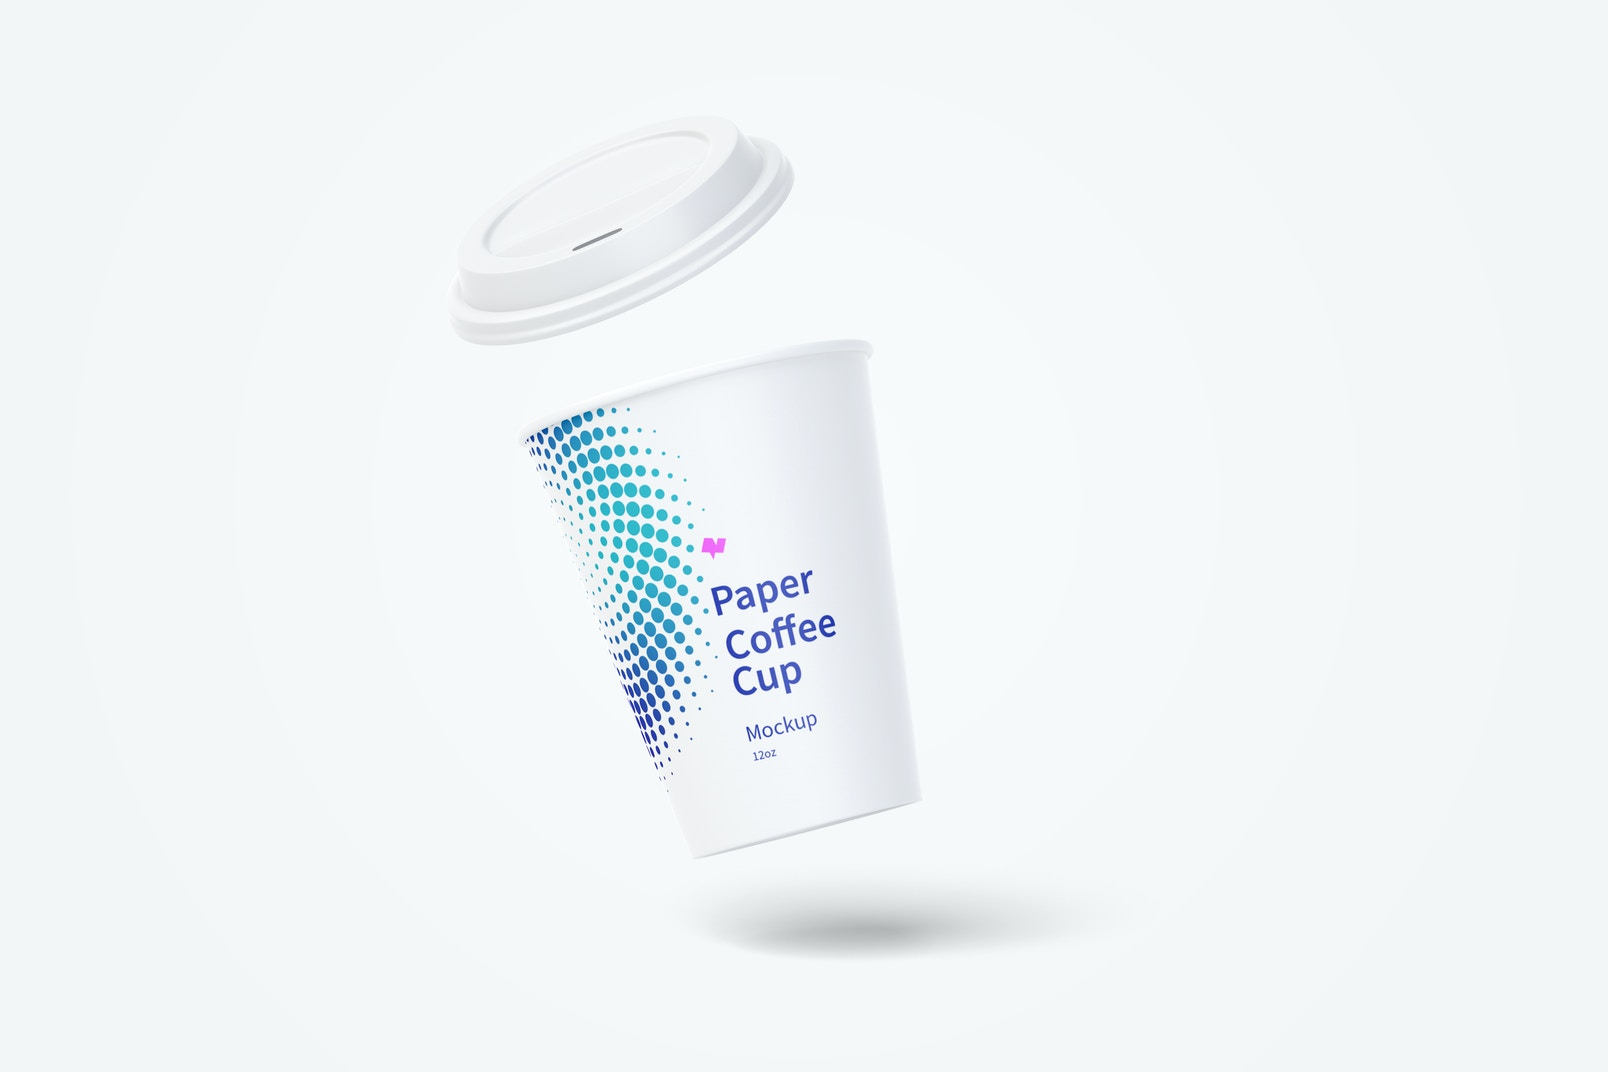 12oz Paper Coffee Cup Mockup, Floating